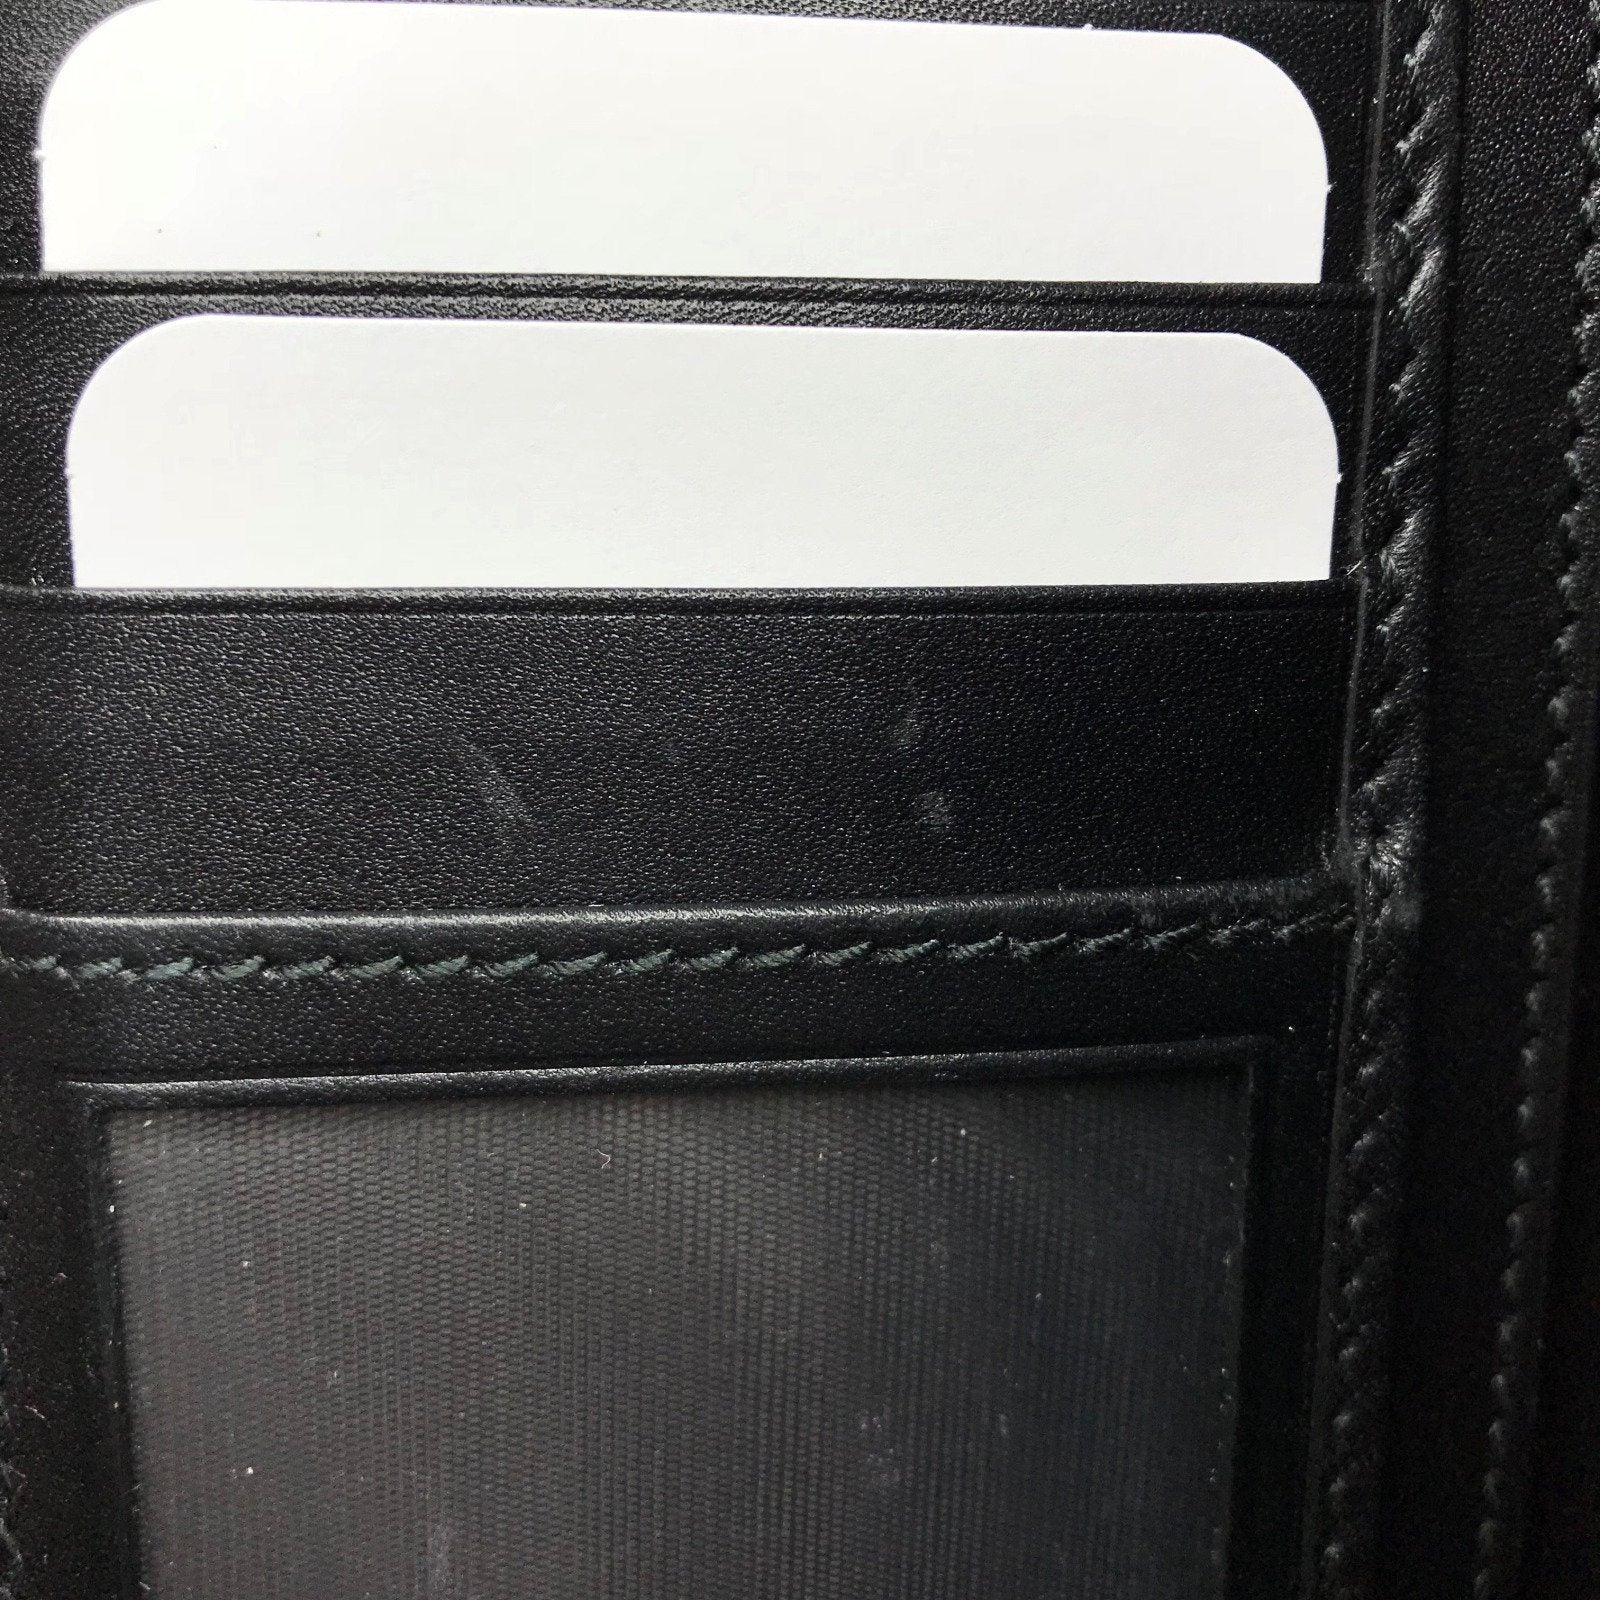 ee52fcca29a Gucci Signature Web Long Wallet - Oliver Jewellery